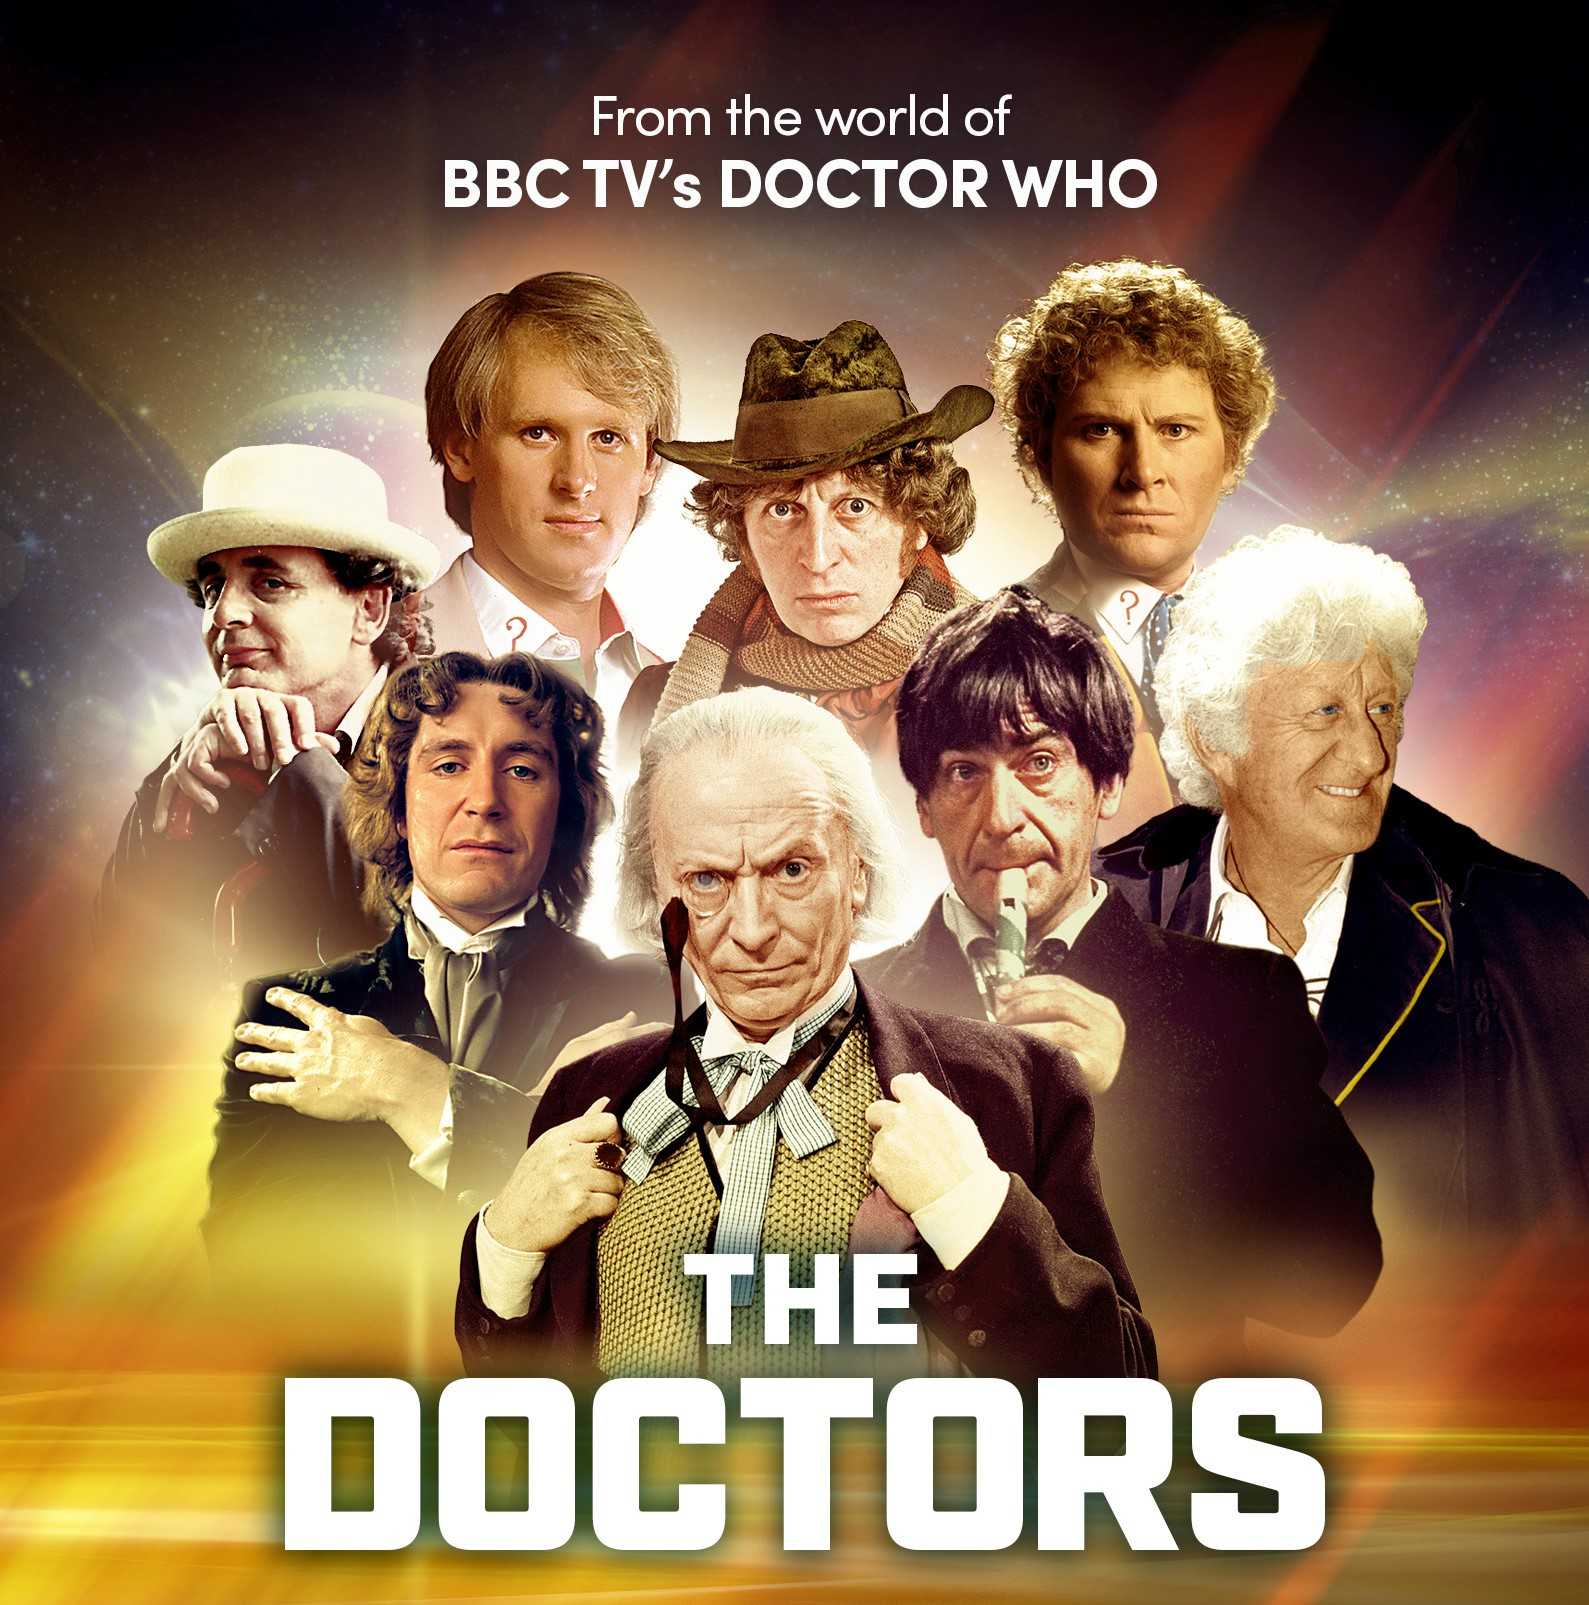 THE DOCTORS SERIES 1-11 COMES TO AMAZON PRIME VIDEO